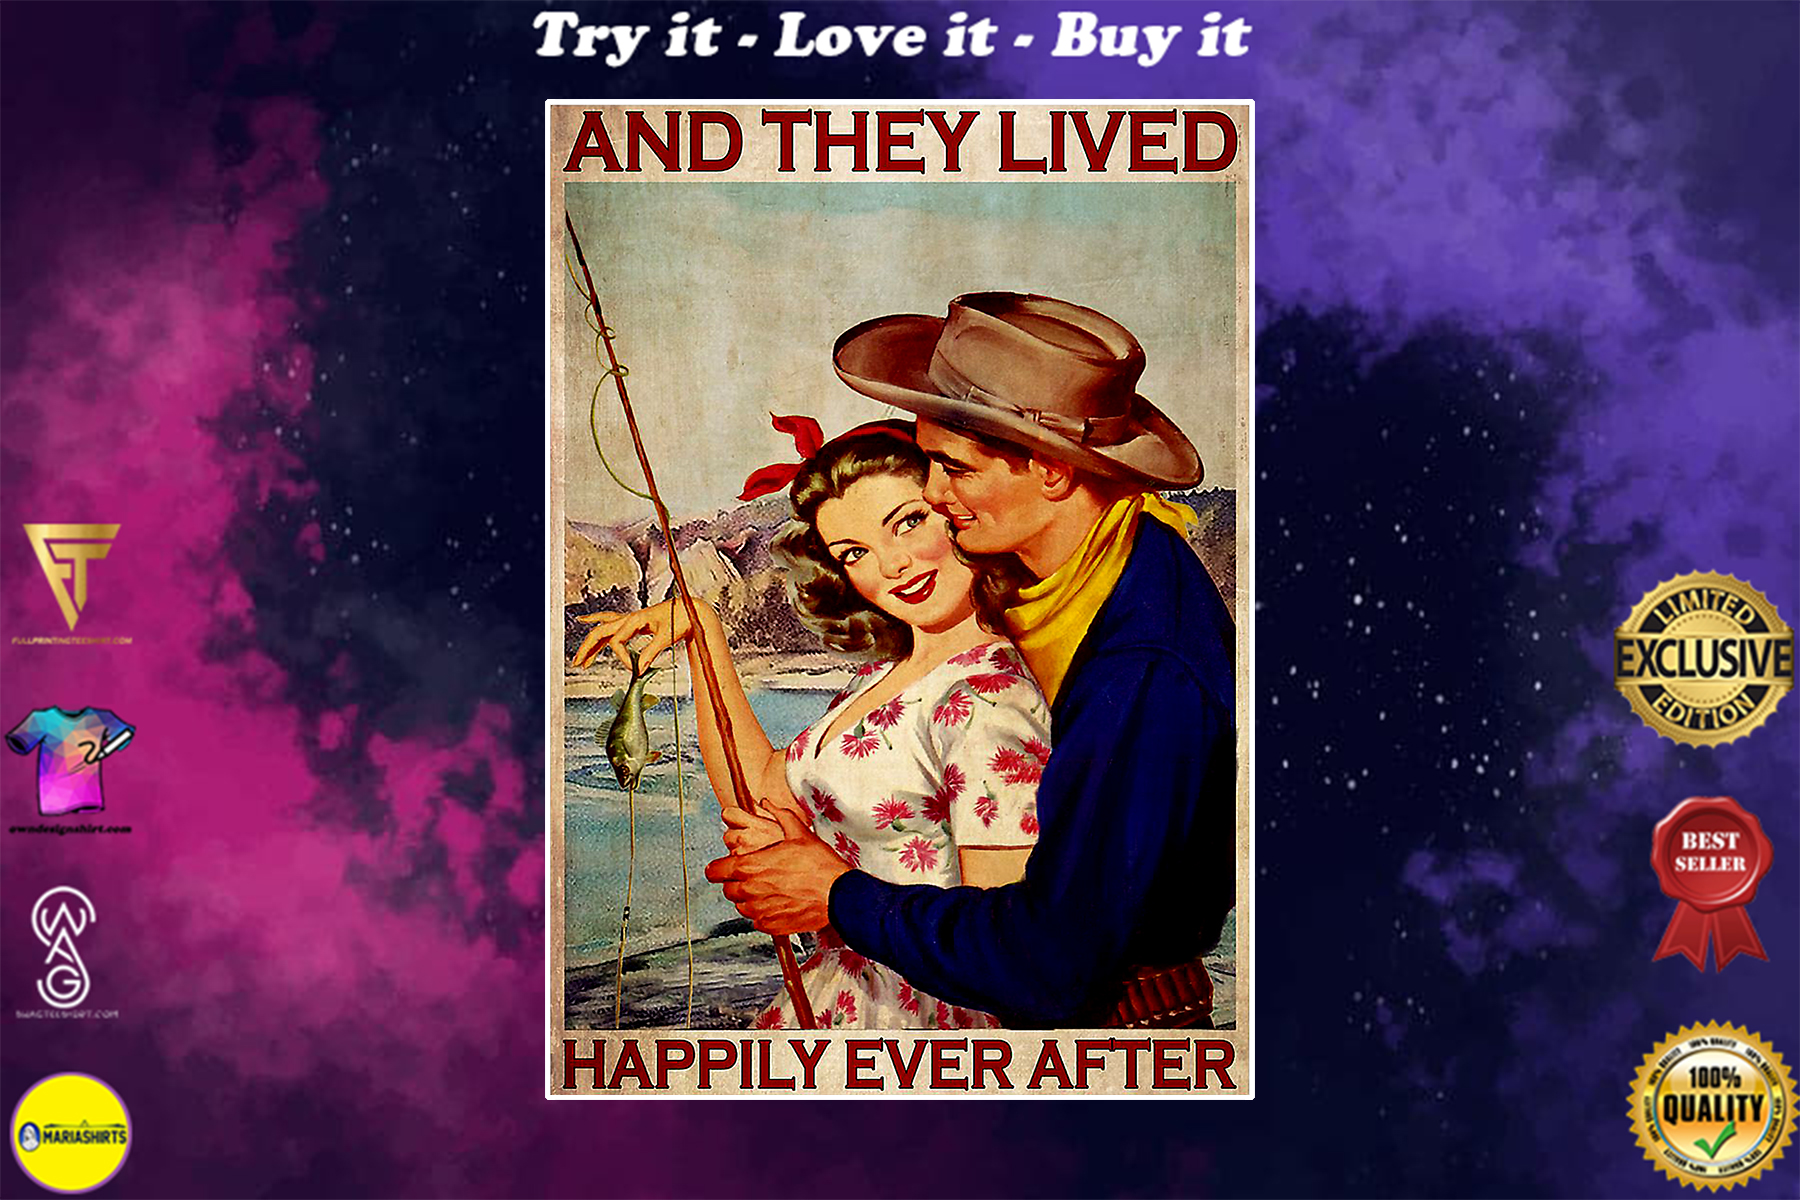 fishing couple and they lived happily ever after retro poster